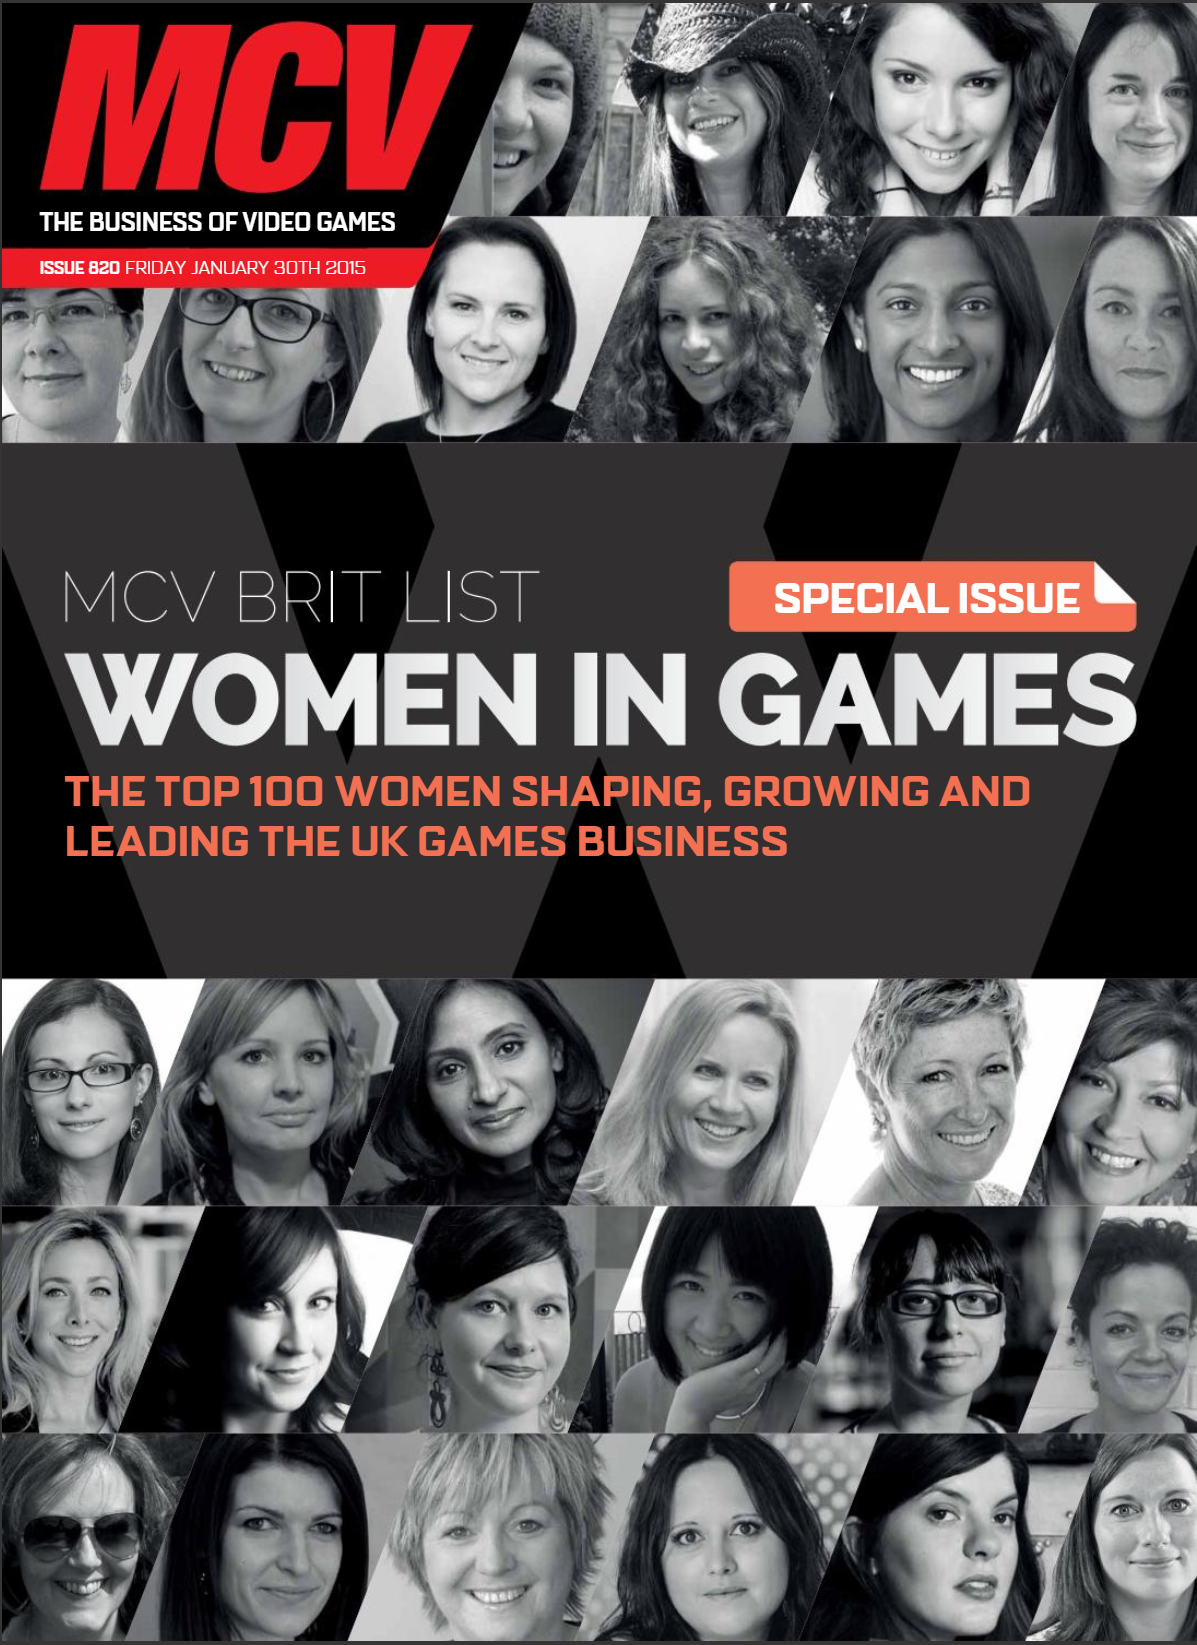 Named one of MCV's Top 100 Women in Games